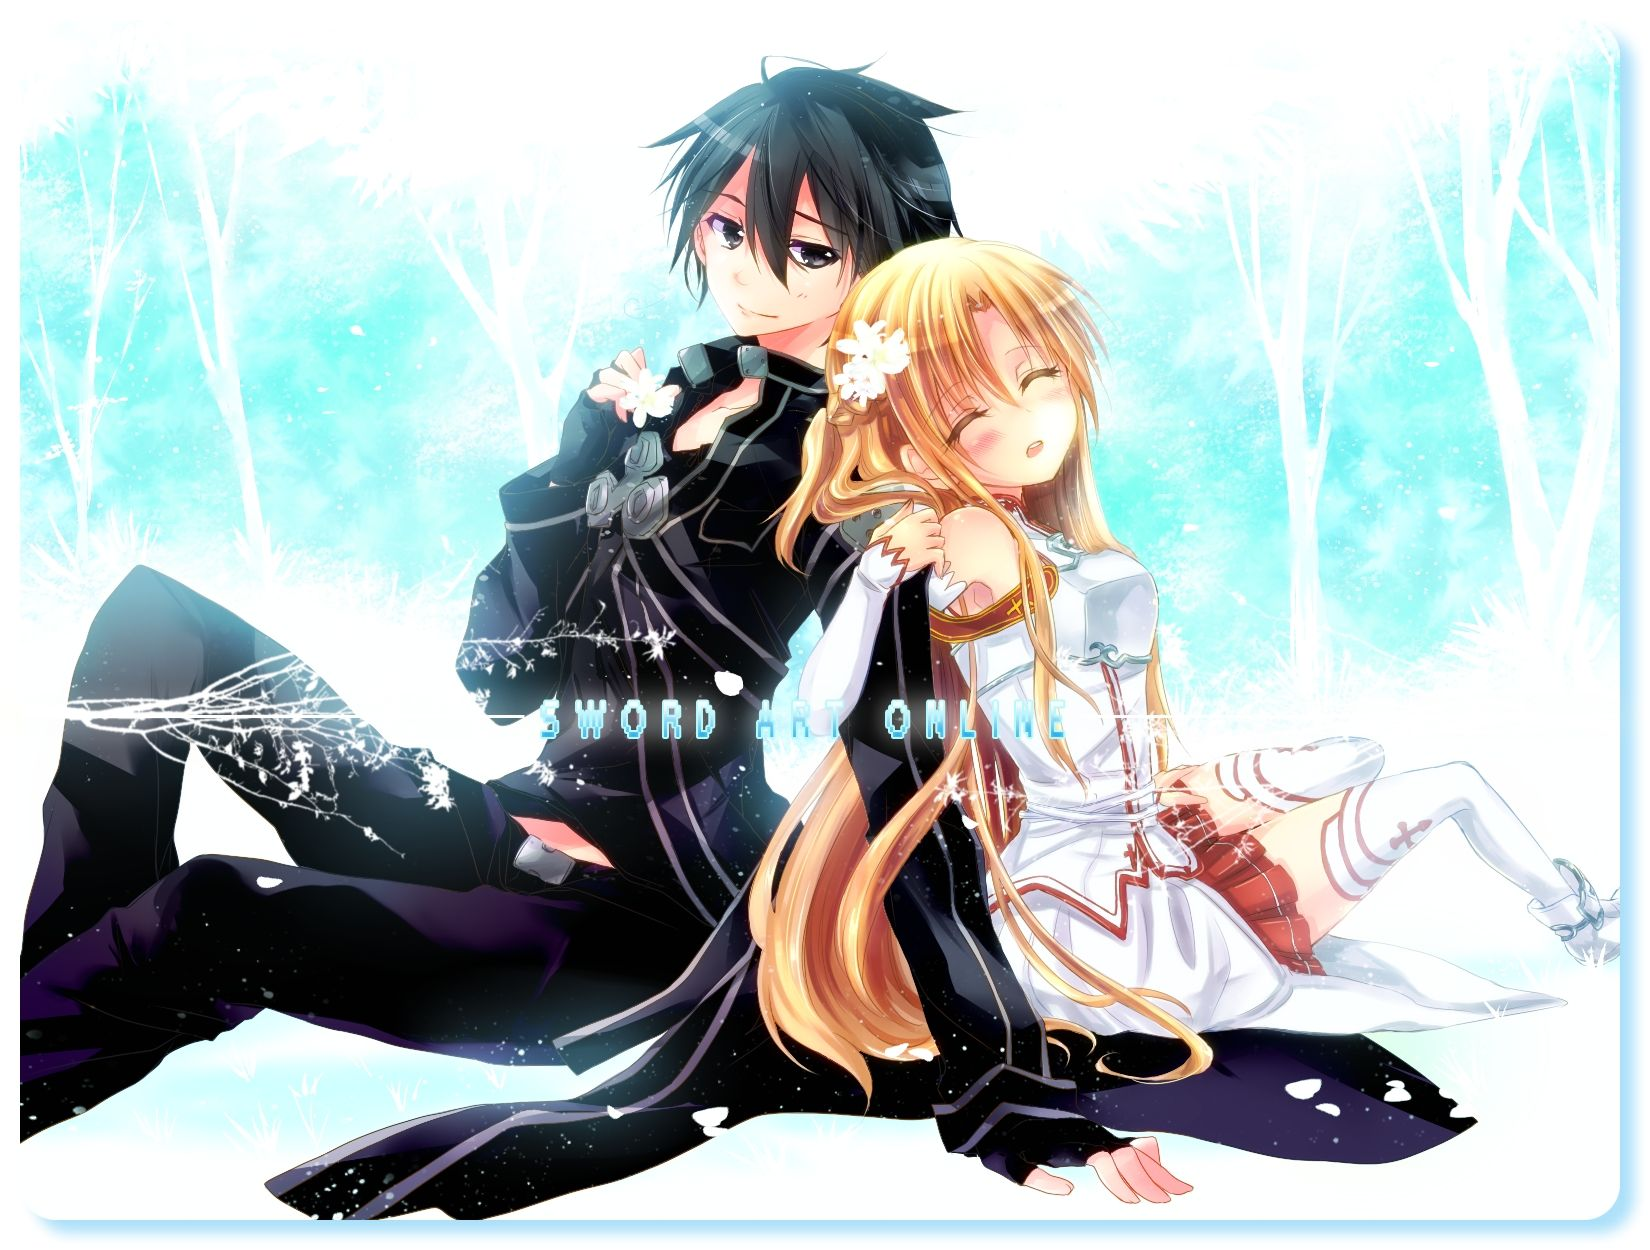 Romantic Anime Boy and Girl Kirito and Asuna Sword Art